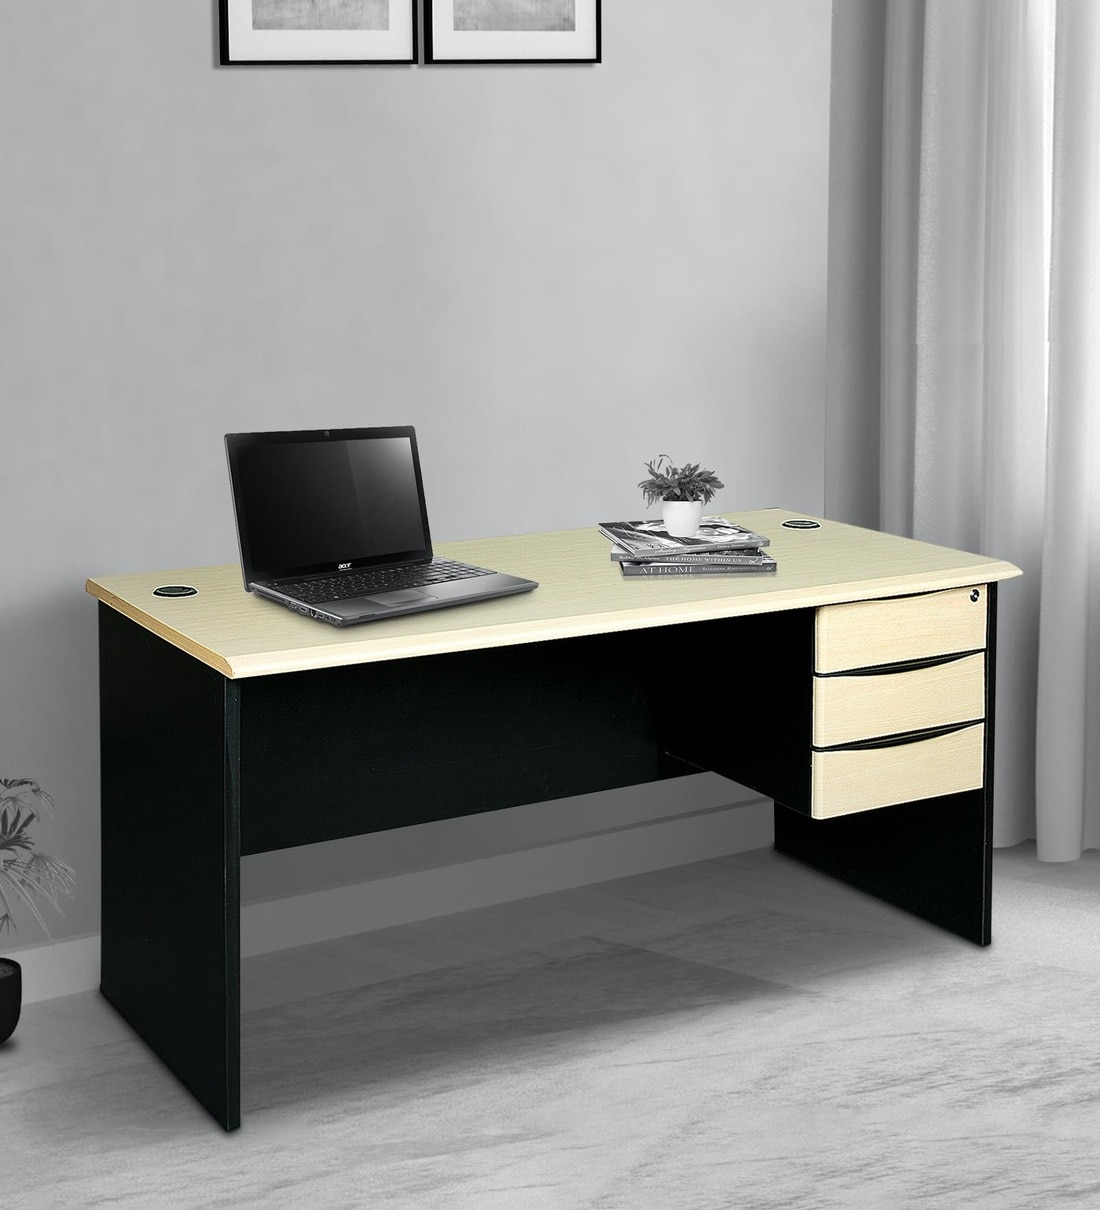 Buy Brisbane Office Table In Maple Black Finish By Parin Online Work Stations Tables Furniture Pepperfry Product